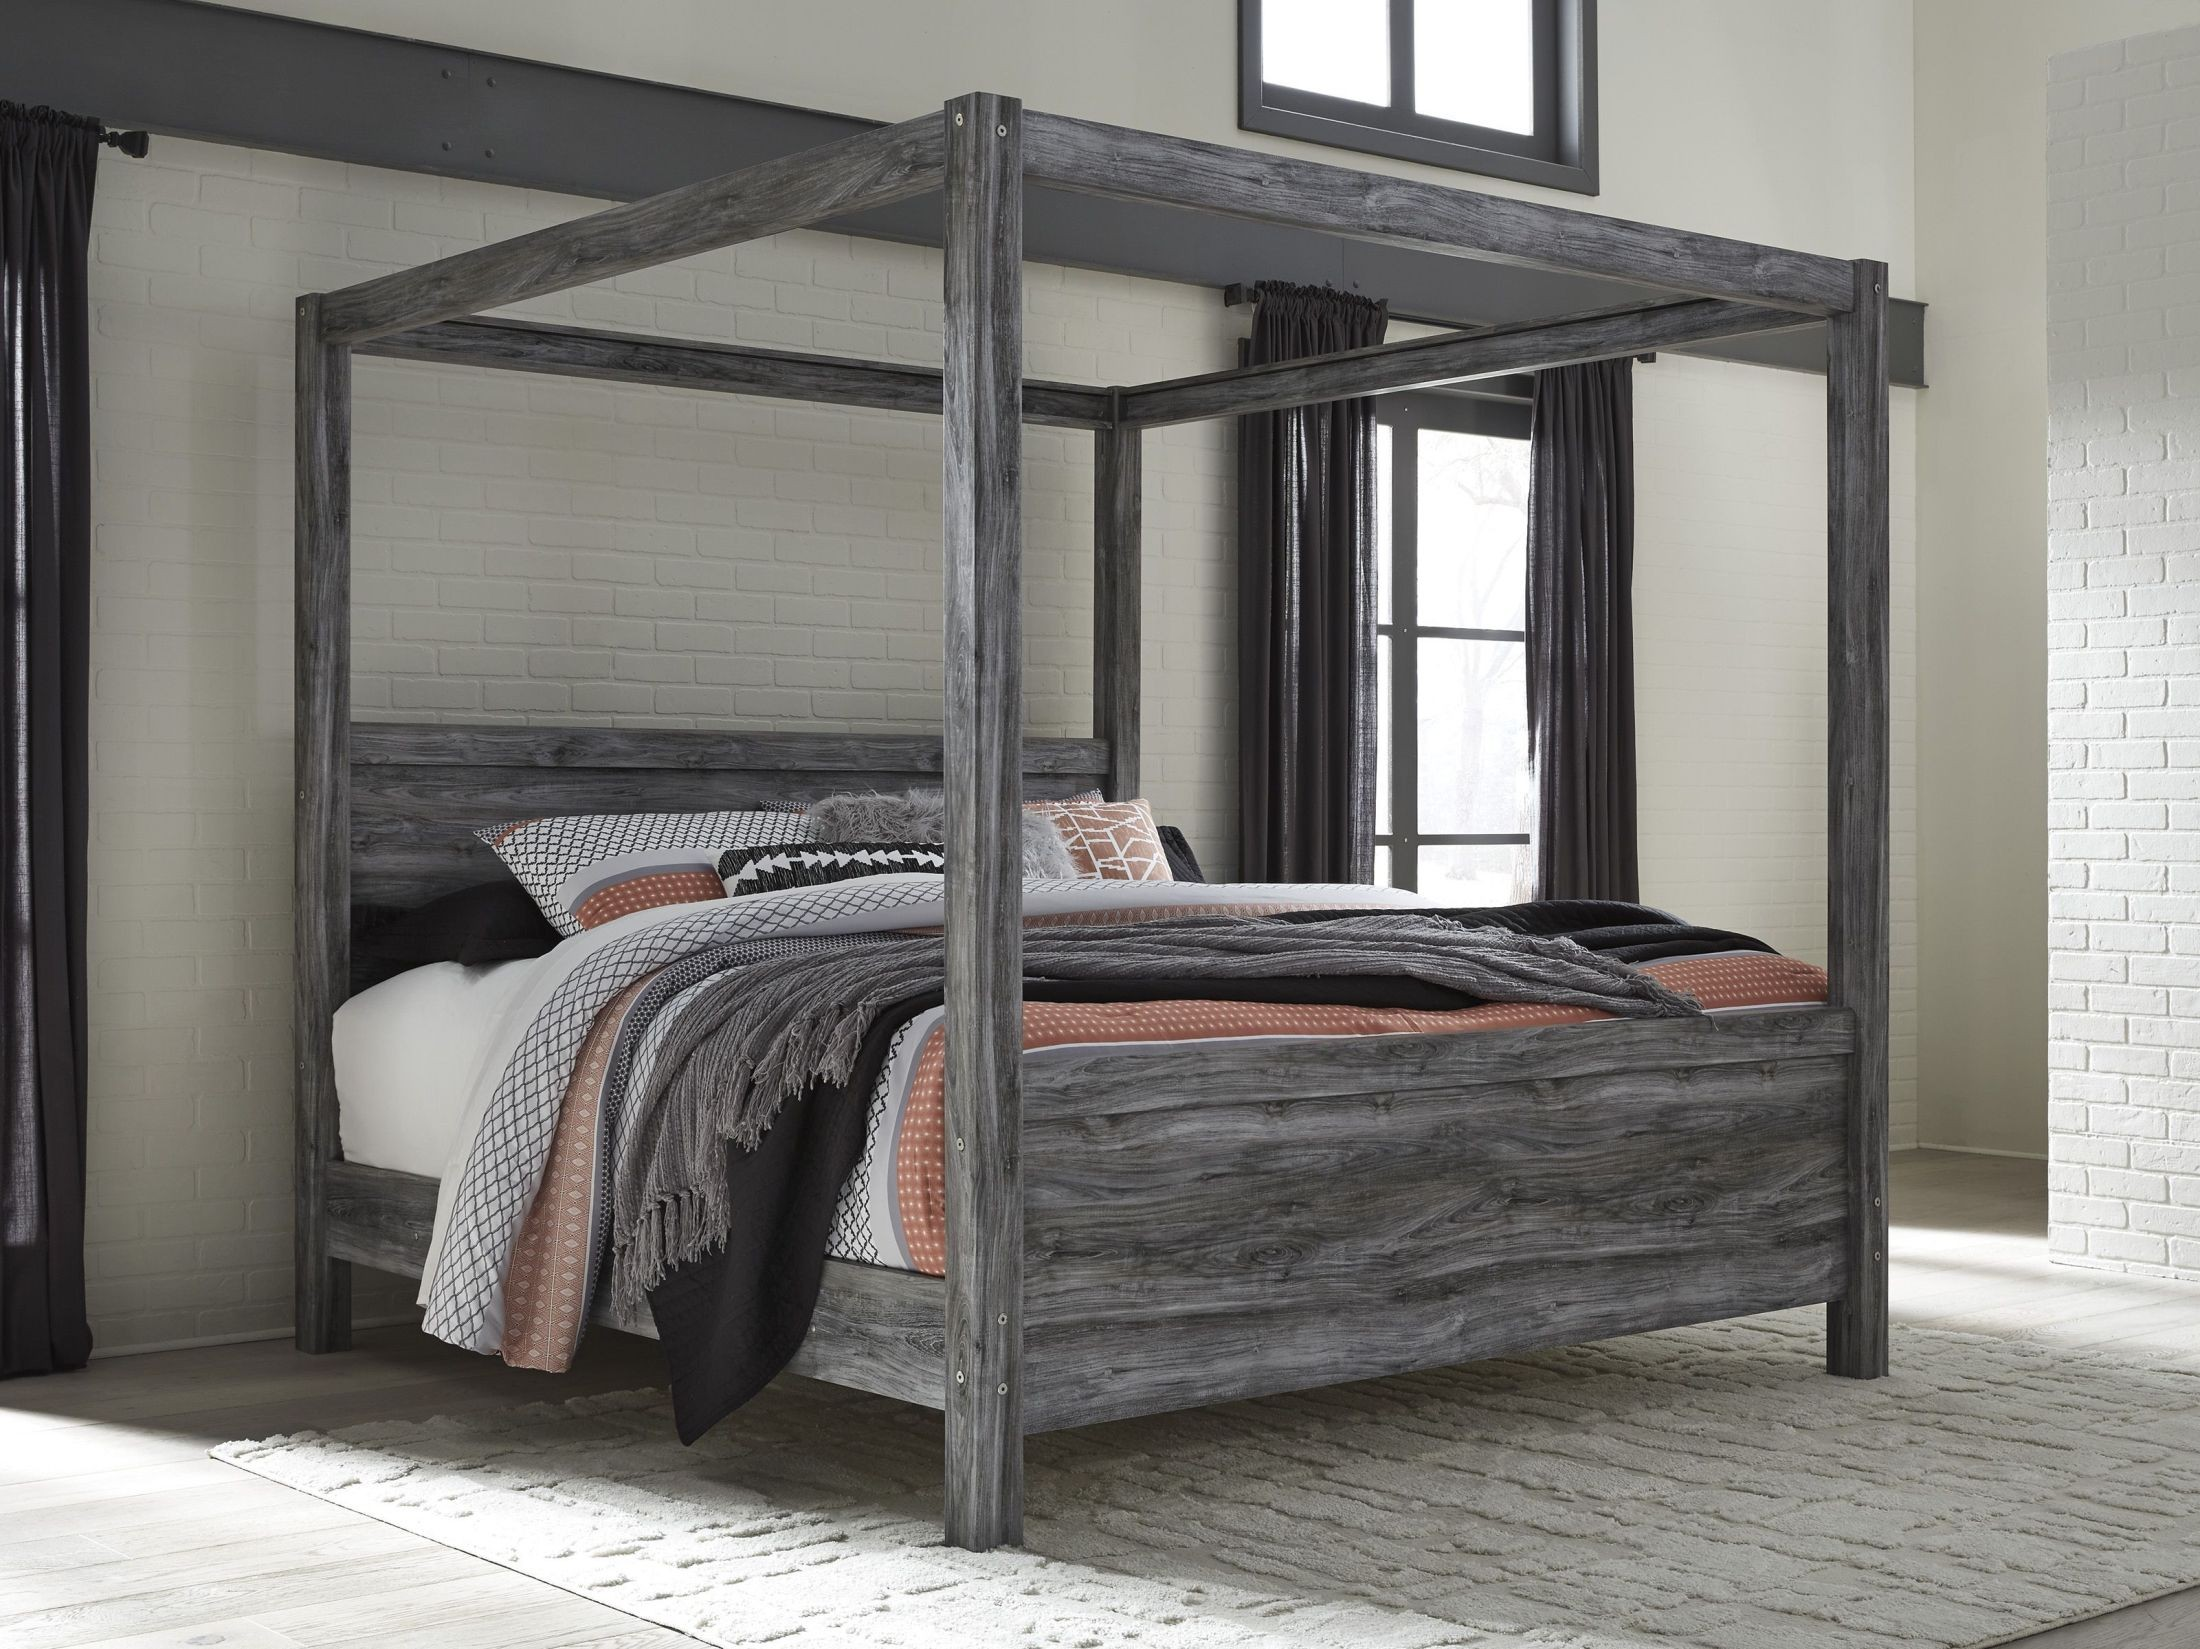 Baystorm Gray King Canopy Bed & Baystorm Gray King Canopy Bed from Ashley | Coleman Furniture